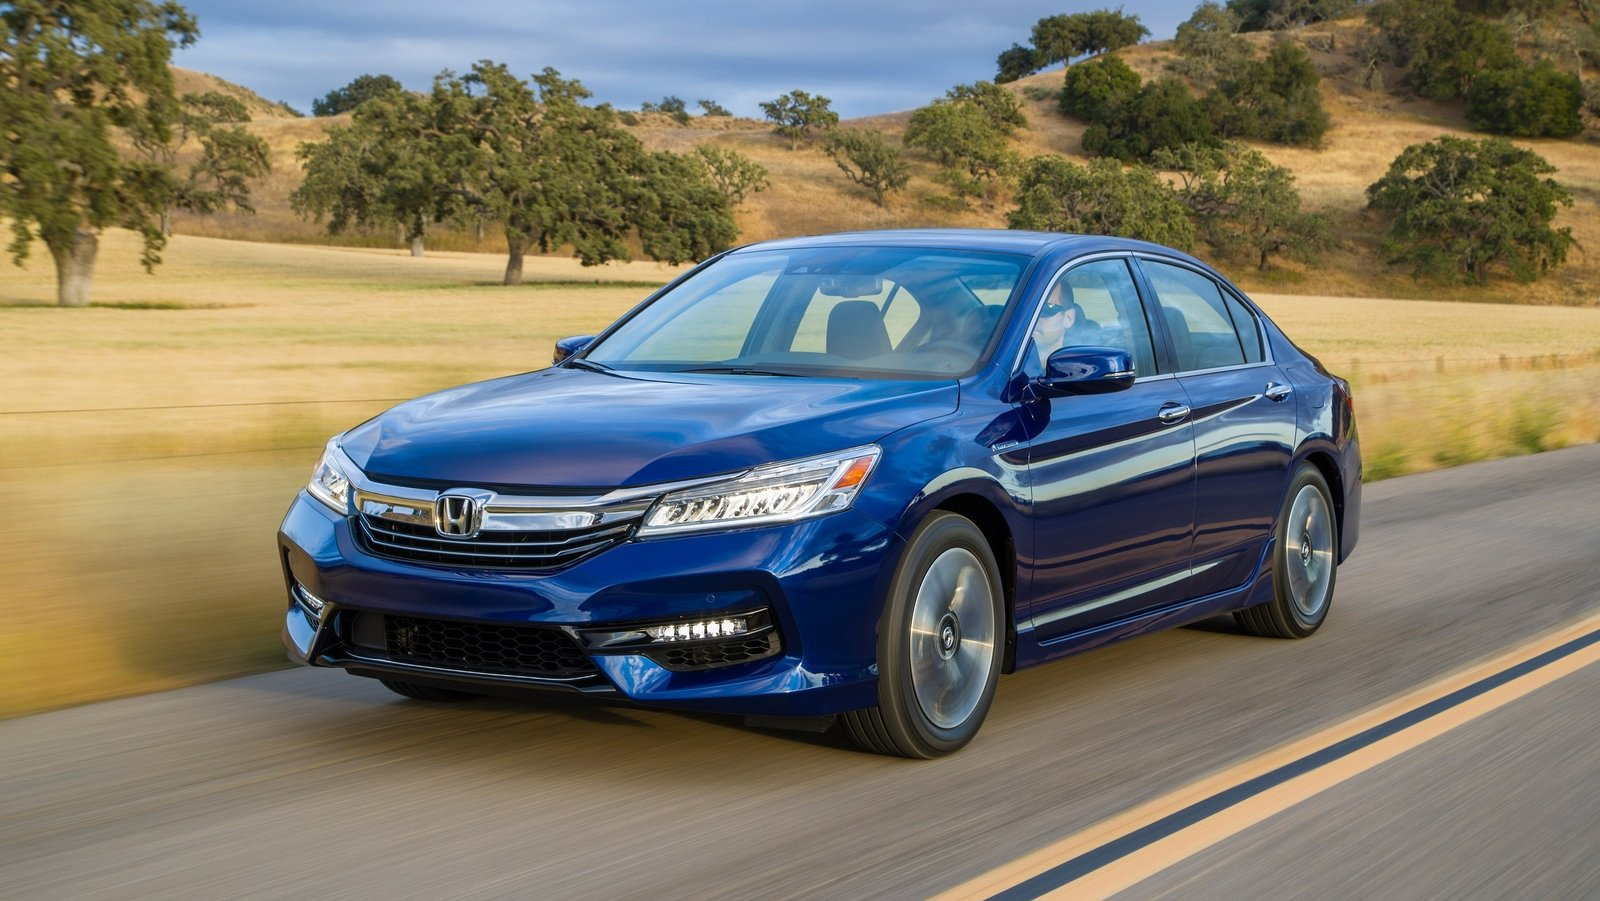 2017 honda accord hybrid review top speed for How much is a 2017 honda accord